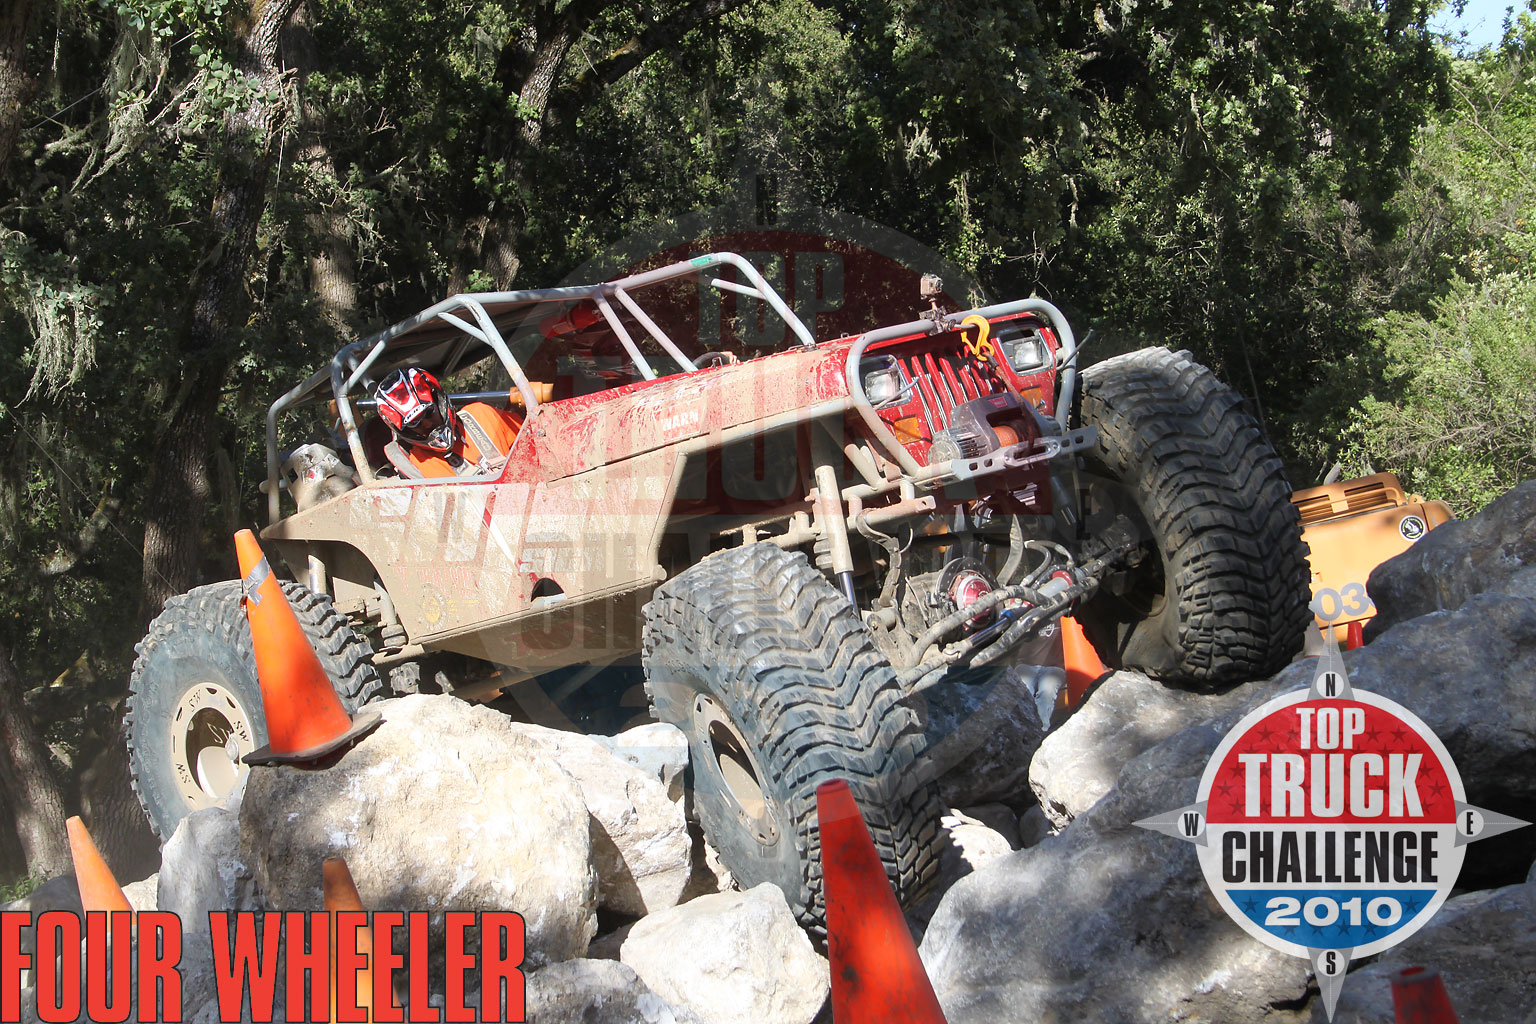 2010 Top Truck Challenge Mini Rubicon Mike Karwath 2009 Tube Chassis Yj Buggy